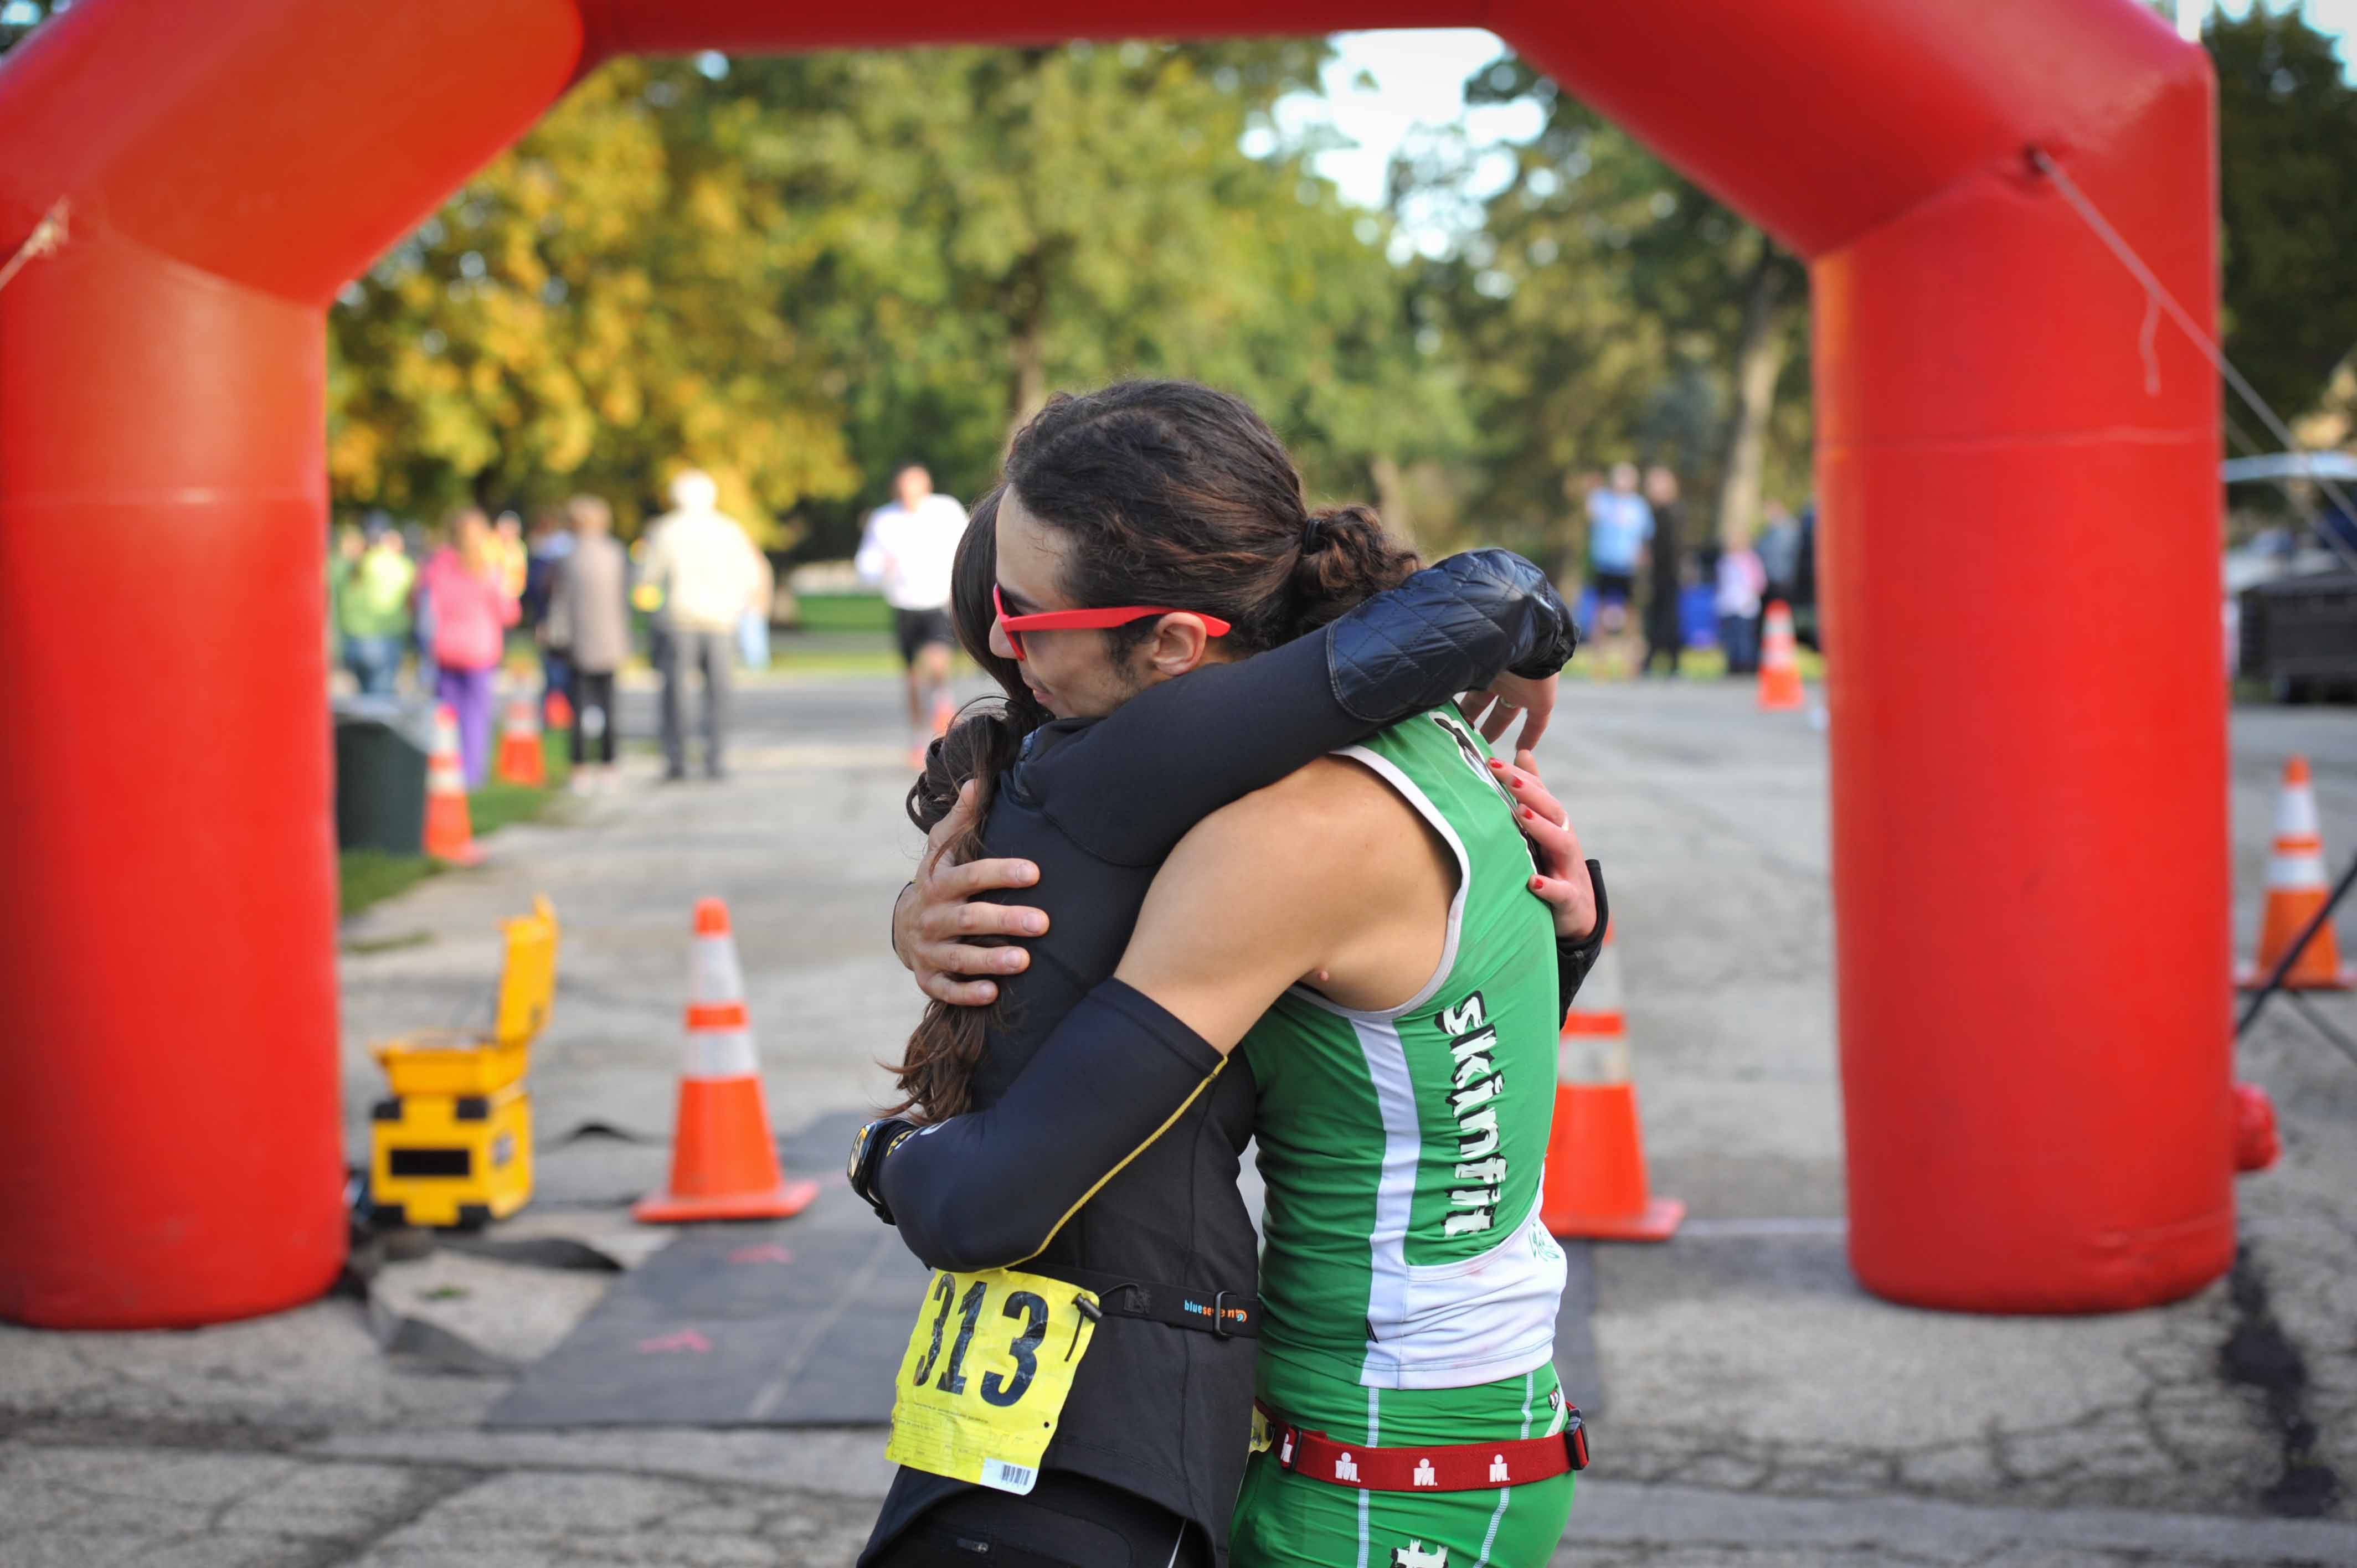 2nd Place Co-Ed Duathlon Team of Mollly Hillig and Christopher Rodriguez embrace at the Finish Line of the Run and Roll for the Dole that took place in Crystal Lake, IL on Sunday, October 6, 2013.